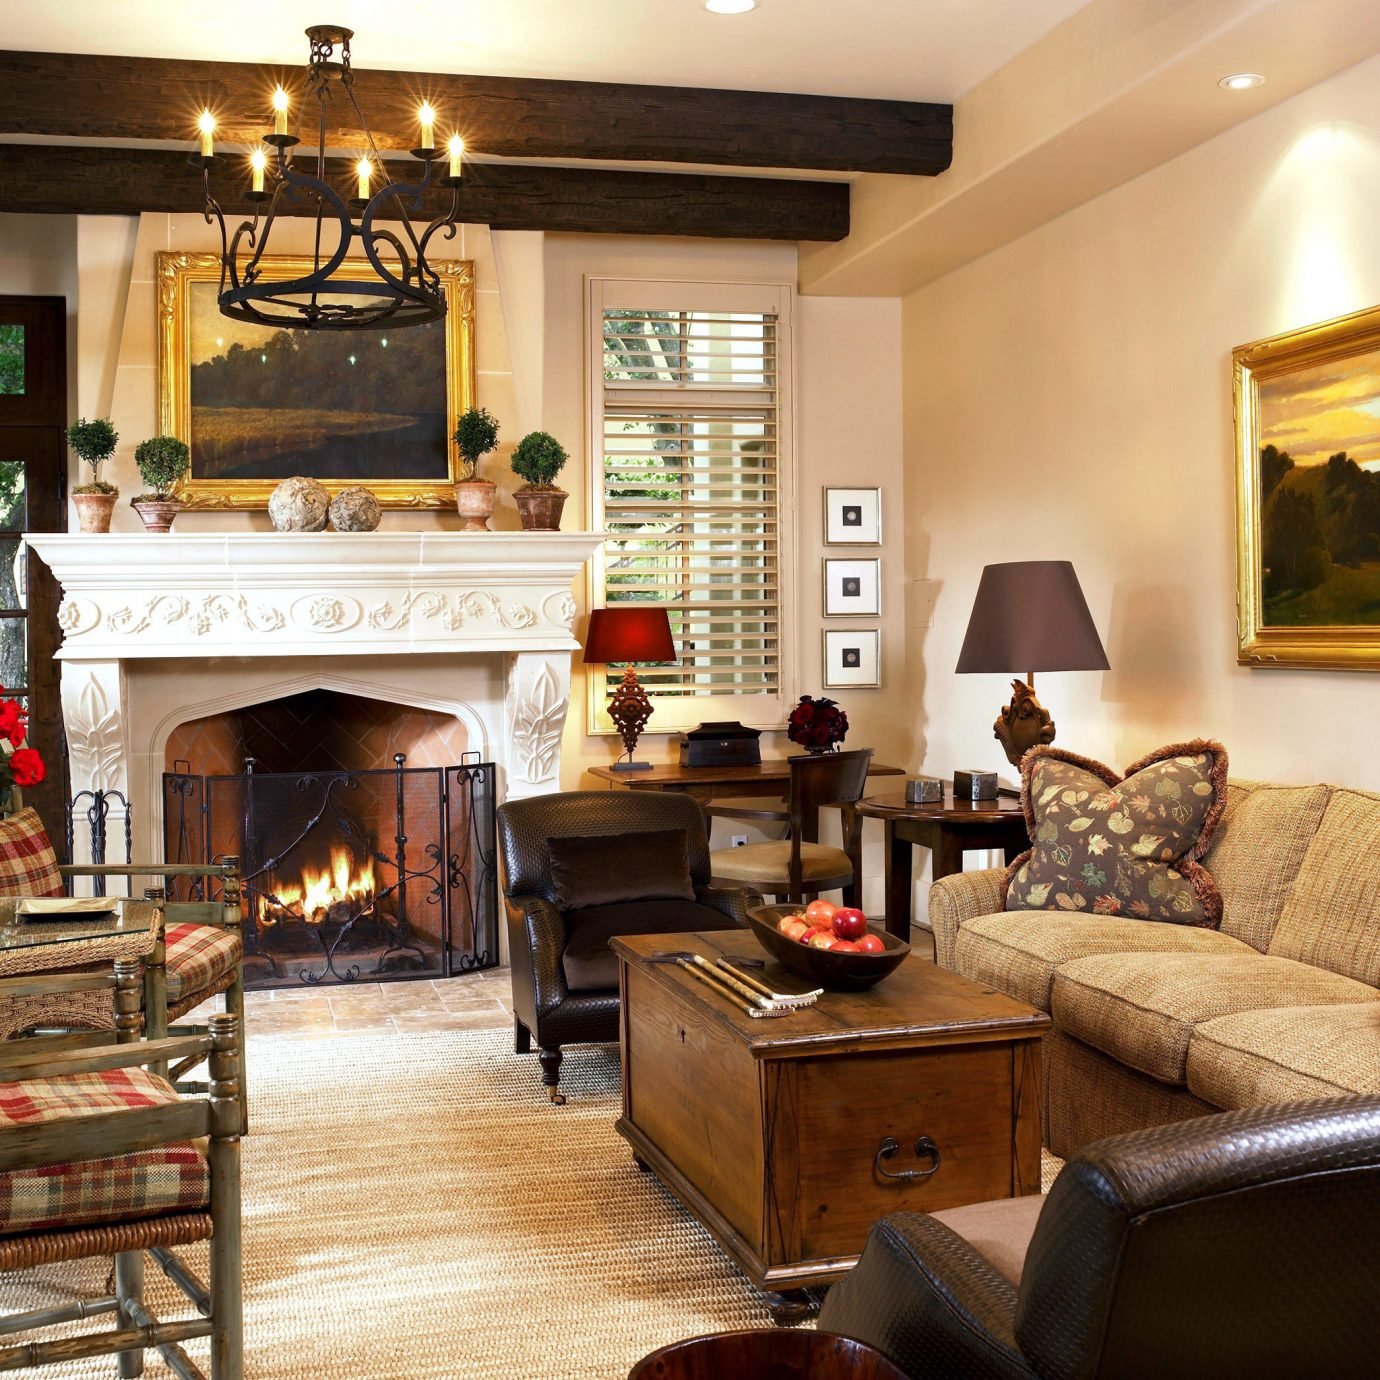 B&B Boutique Fireplace Inn Lounge sofa living room property chair home cottage Lobby mansion Villa